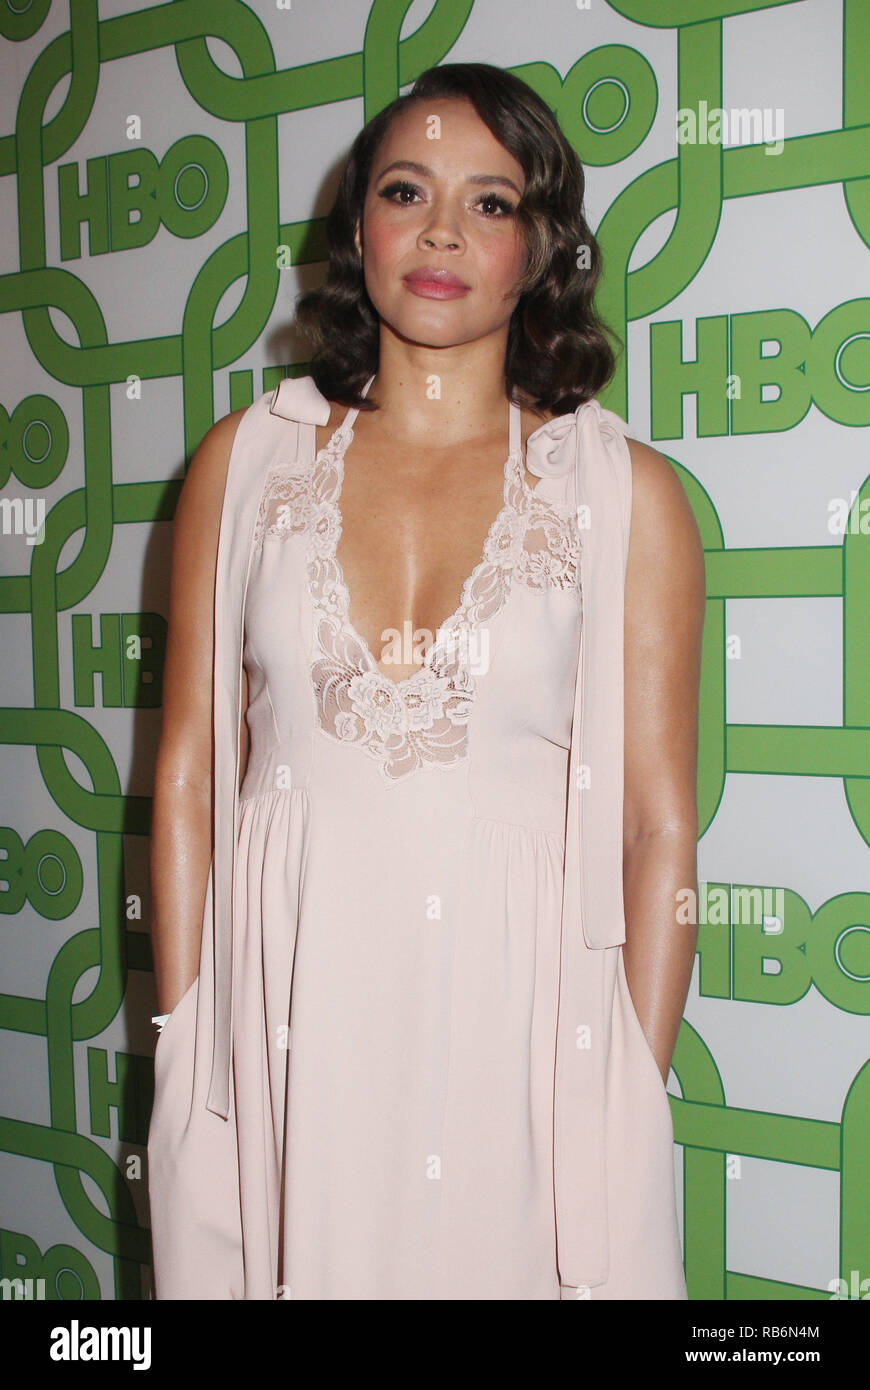 Carmen Ejogo  01/06/2019 The 76th Annual Golden Globe Awards HBO After Party held at the Circa 55 Restaurant at The Beverly Hilton in Beverly Hills, CA  Photo: Cronos/Hollywood News Stock Photo